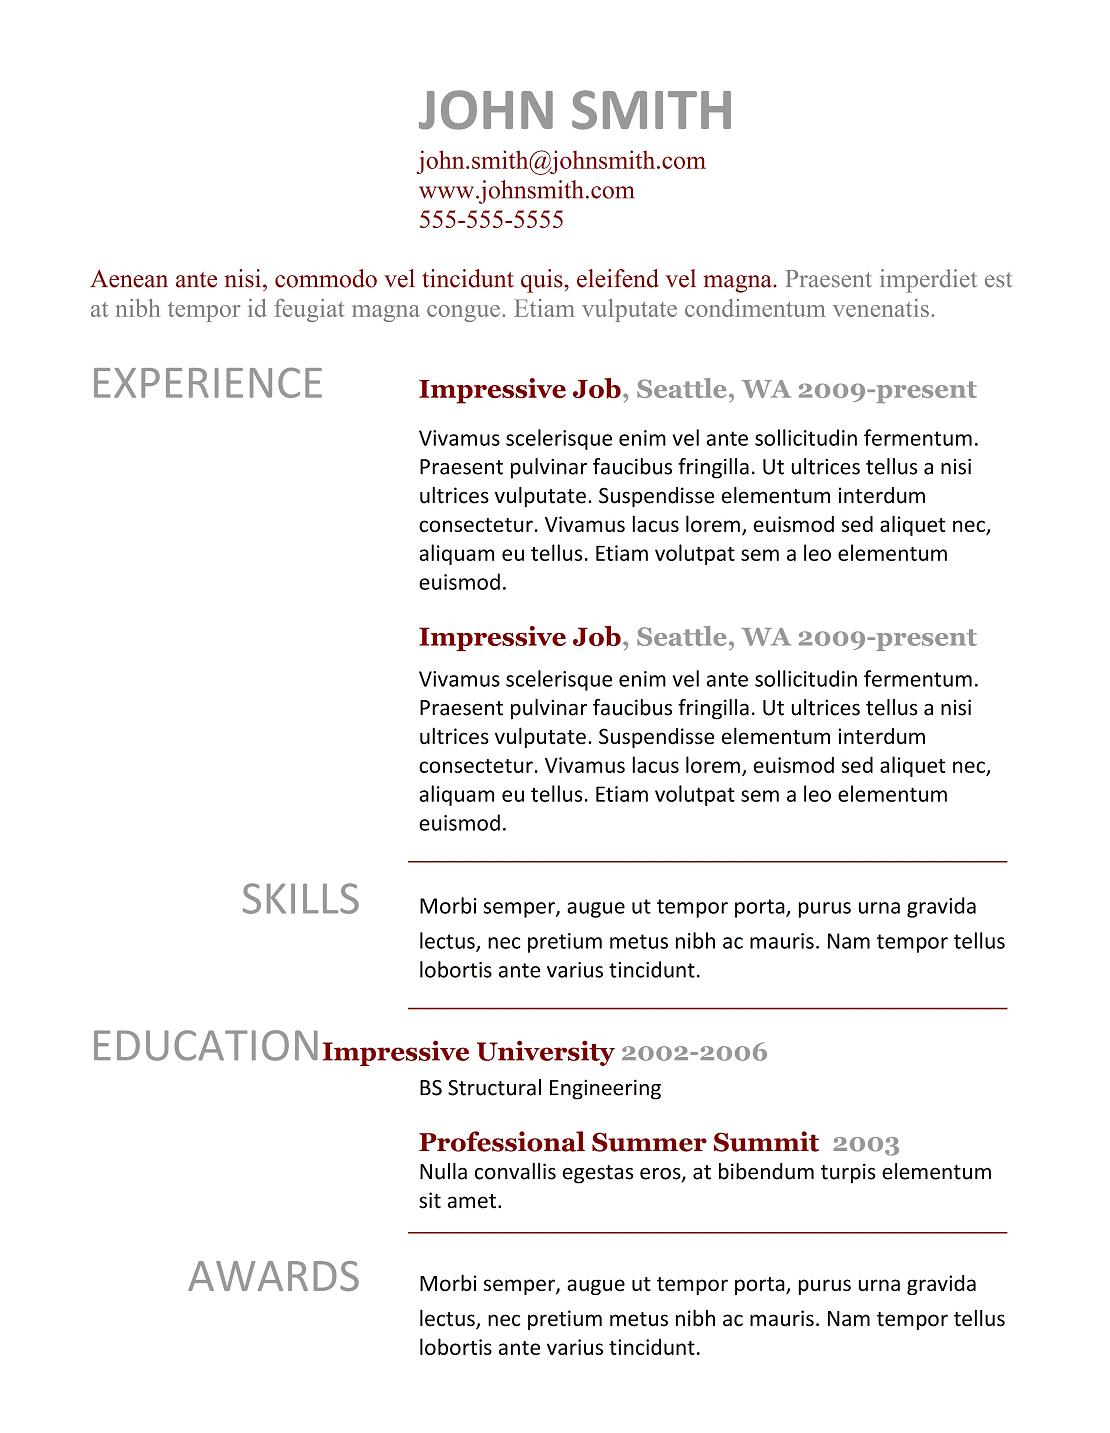 resume samples doc for freshers curriculum vitae resume samples doc for freshers resume samples for entry level profiles freshers professional resume template for